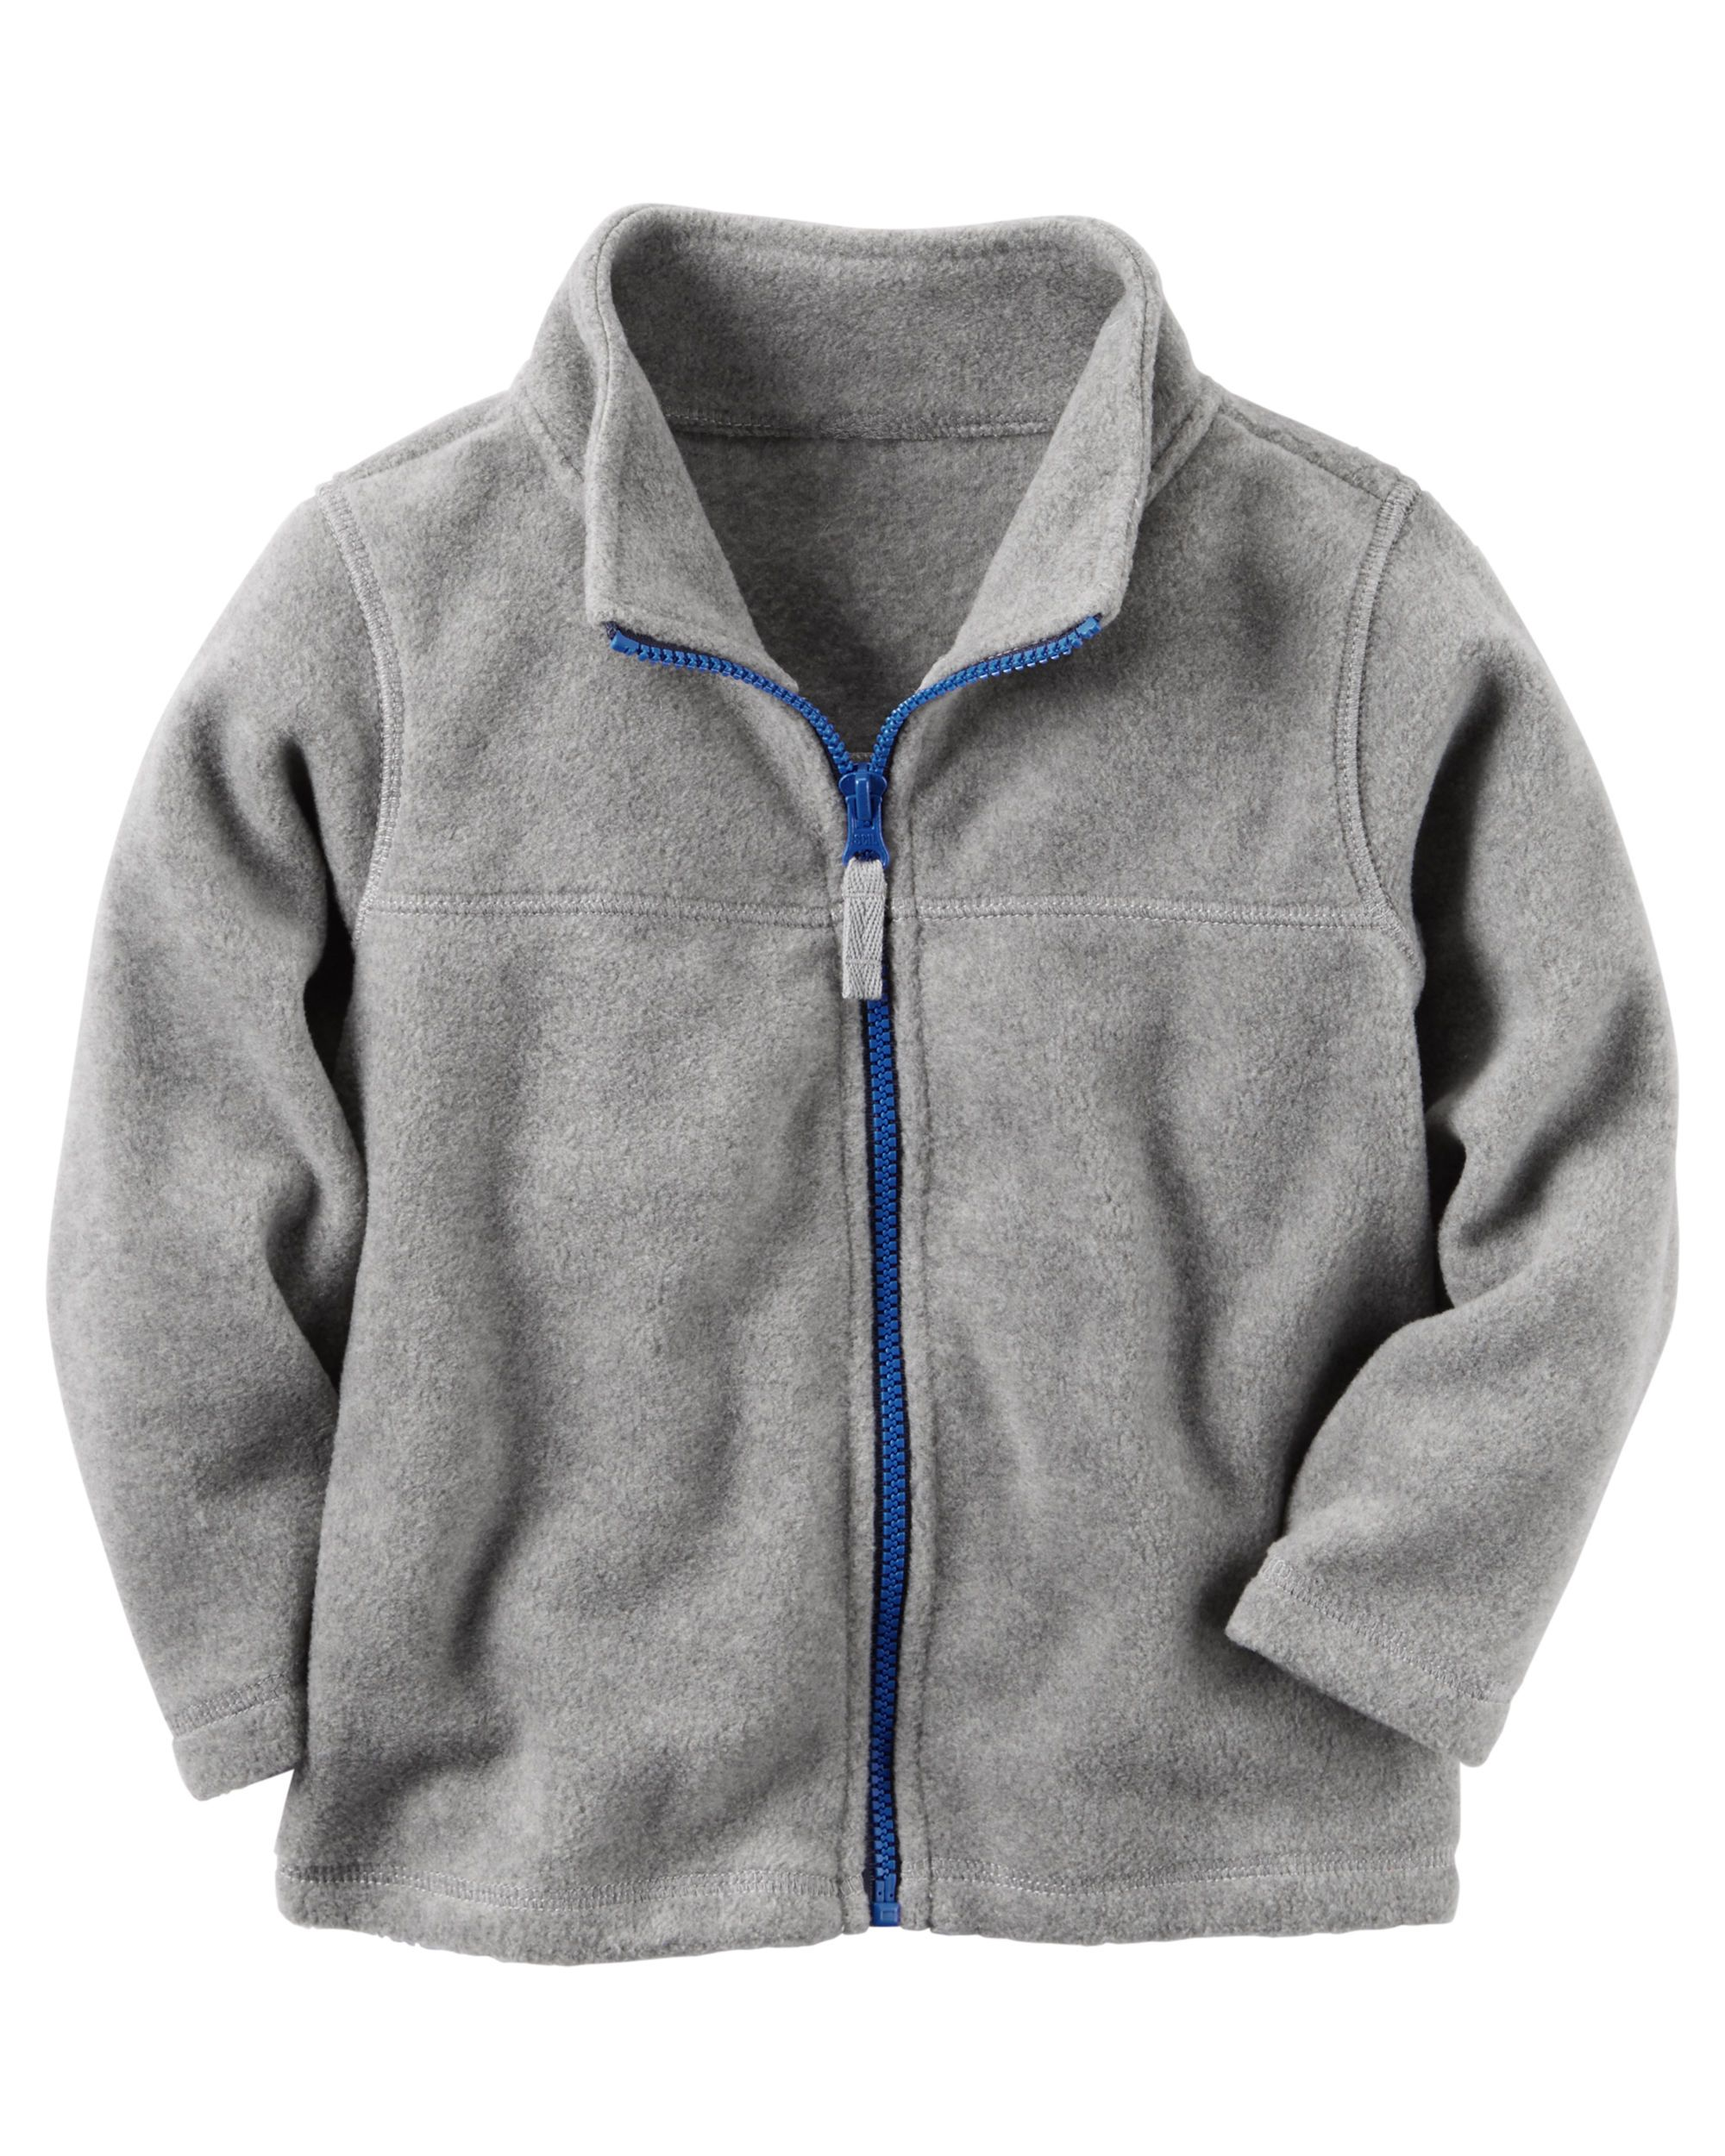 Zipup heavyweight fleece jacket baby boy tops carters baby boys